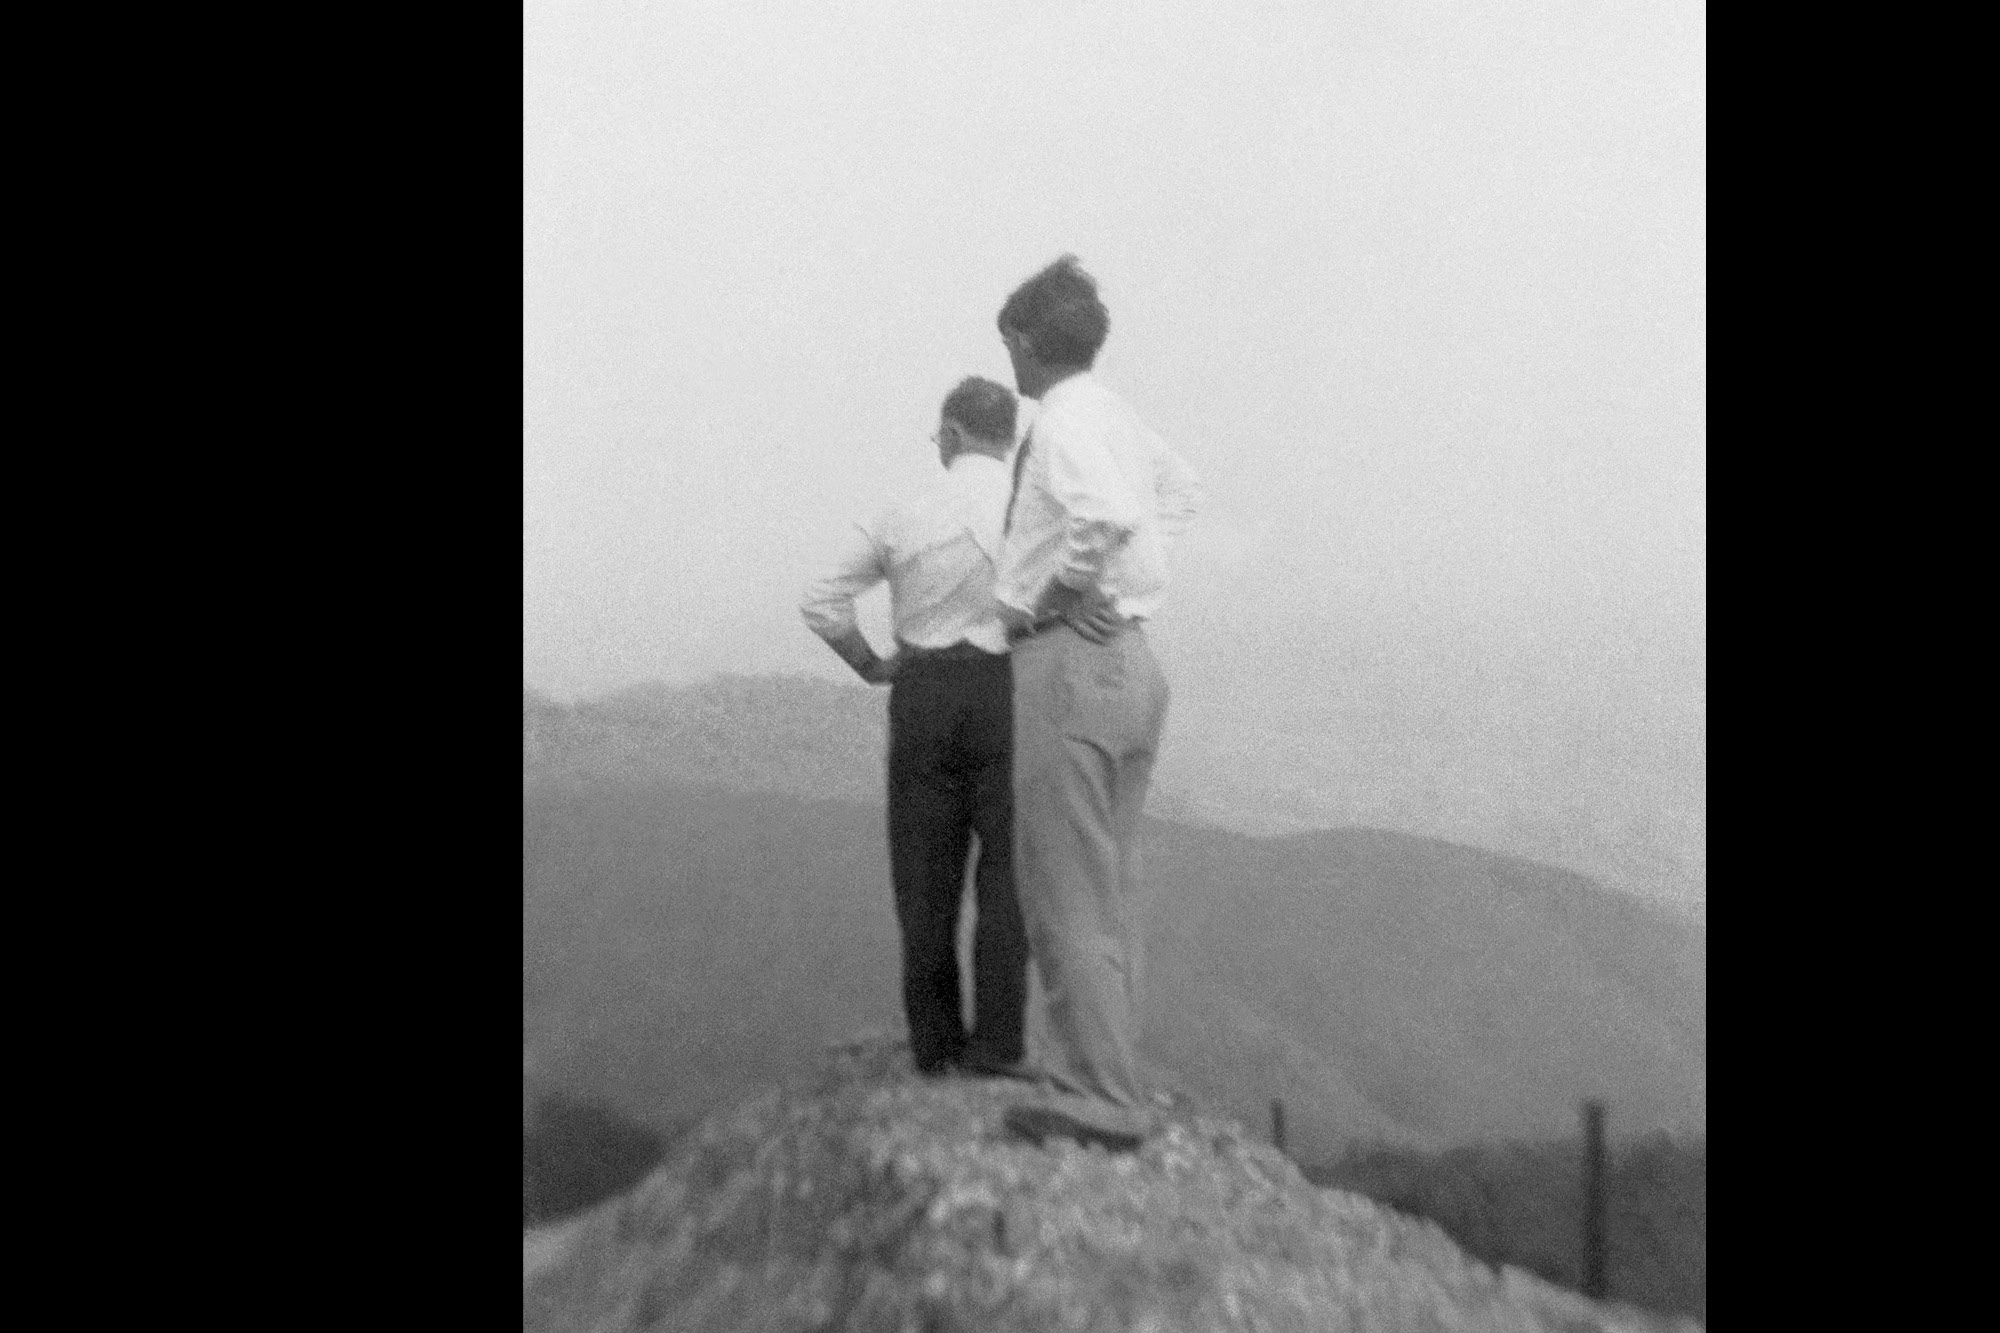 Photograph of two unidentified men looking into the distance.